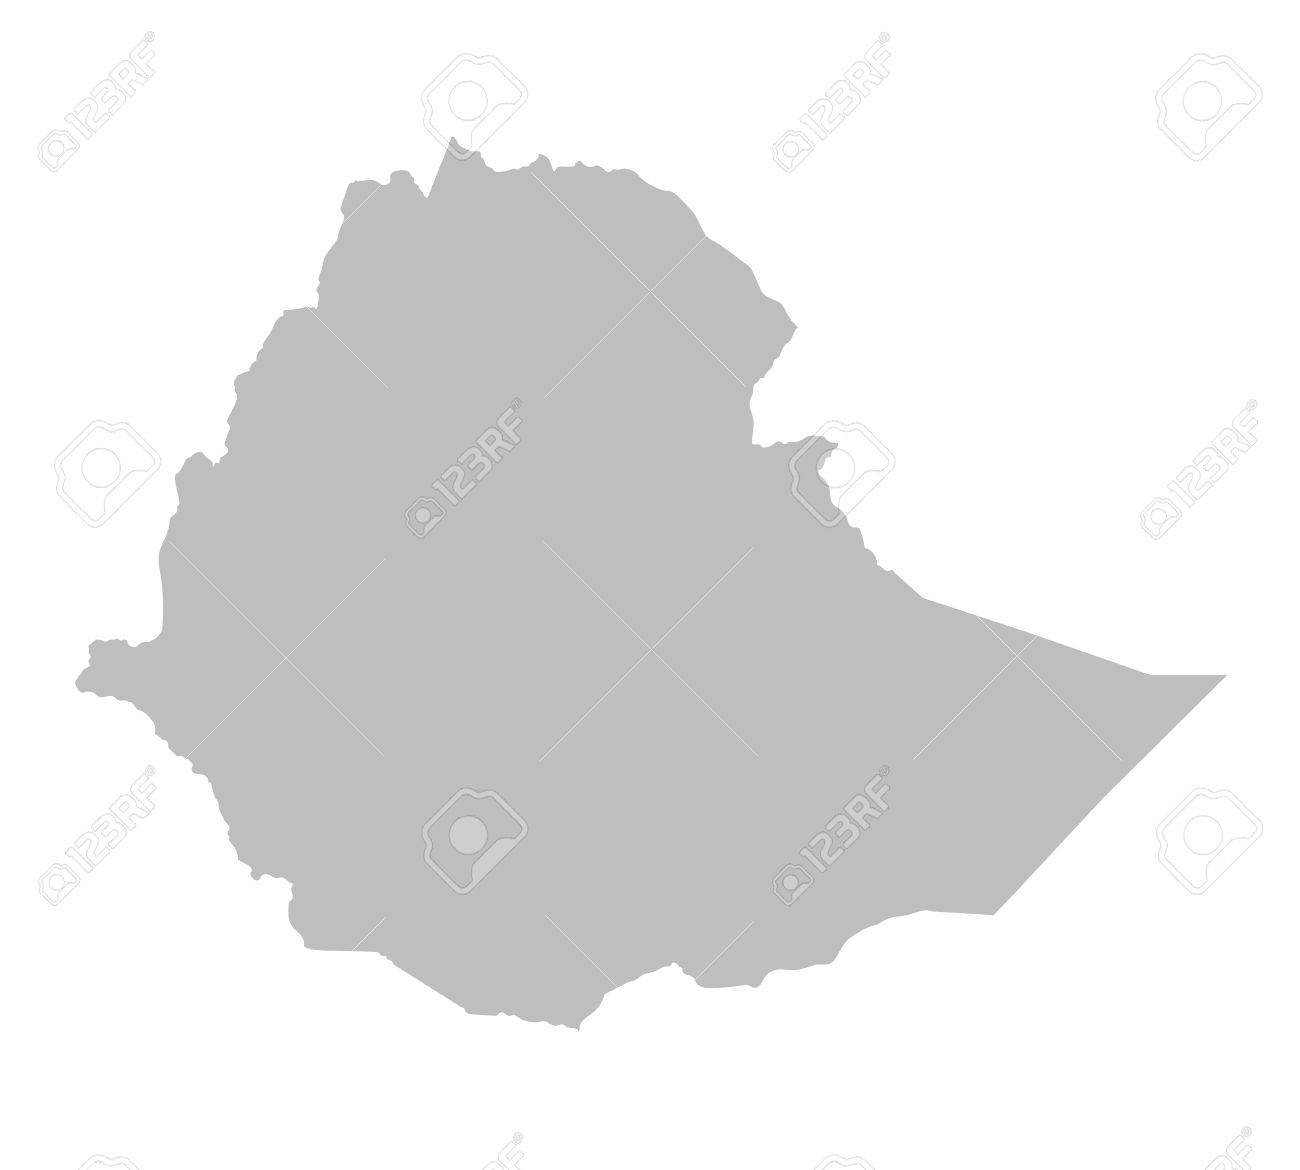 Grey Map Of Ethiopia Royalty Free Cliparts Vectors And Stock - Ethiopia map